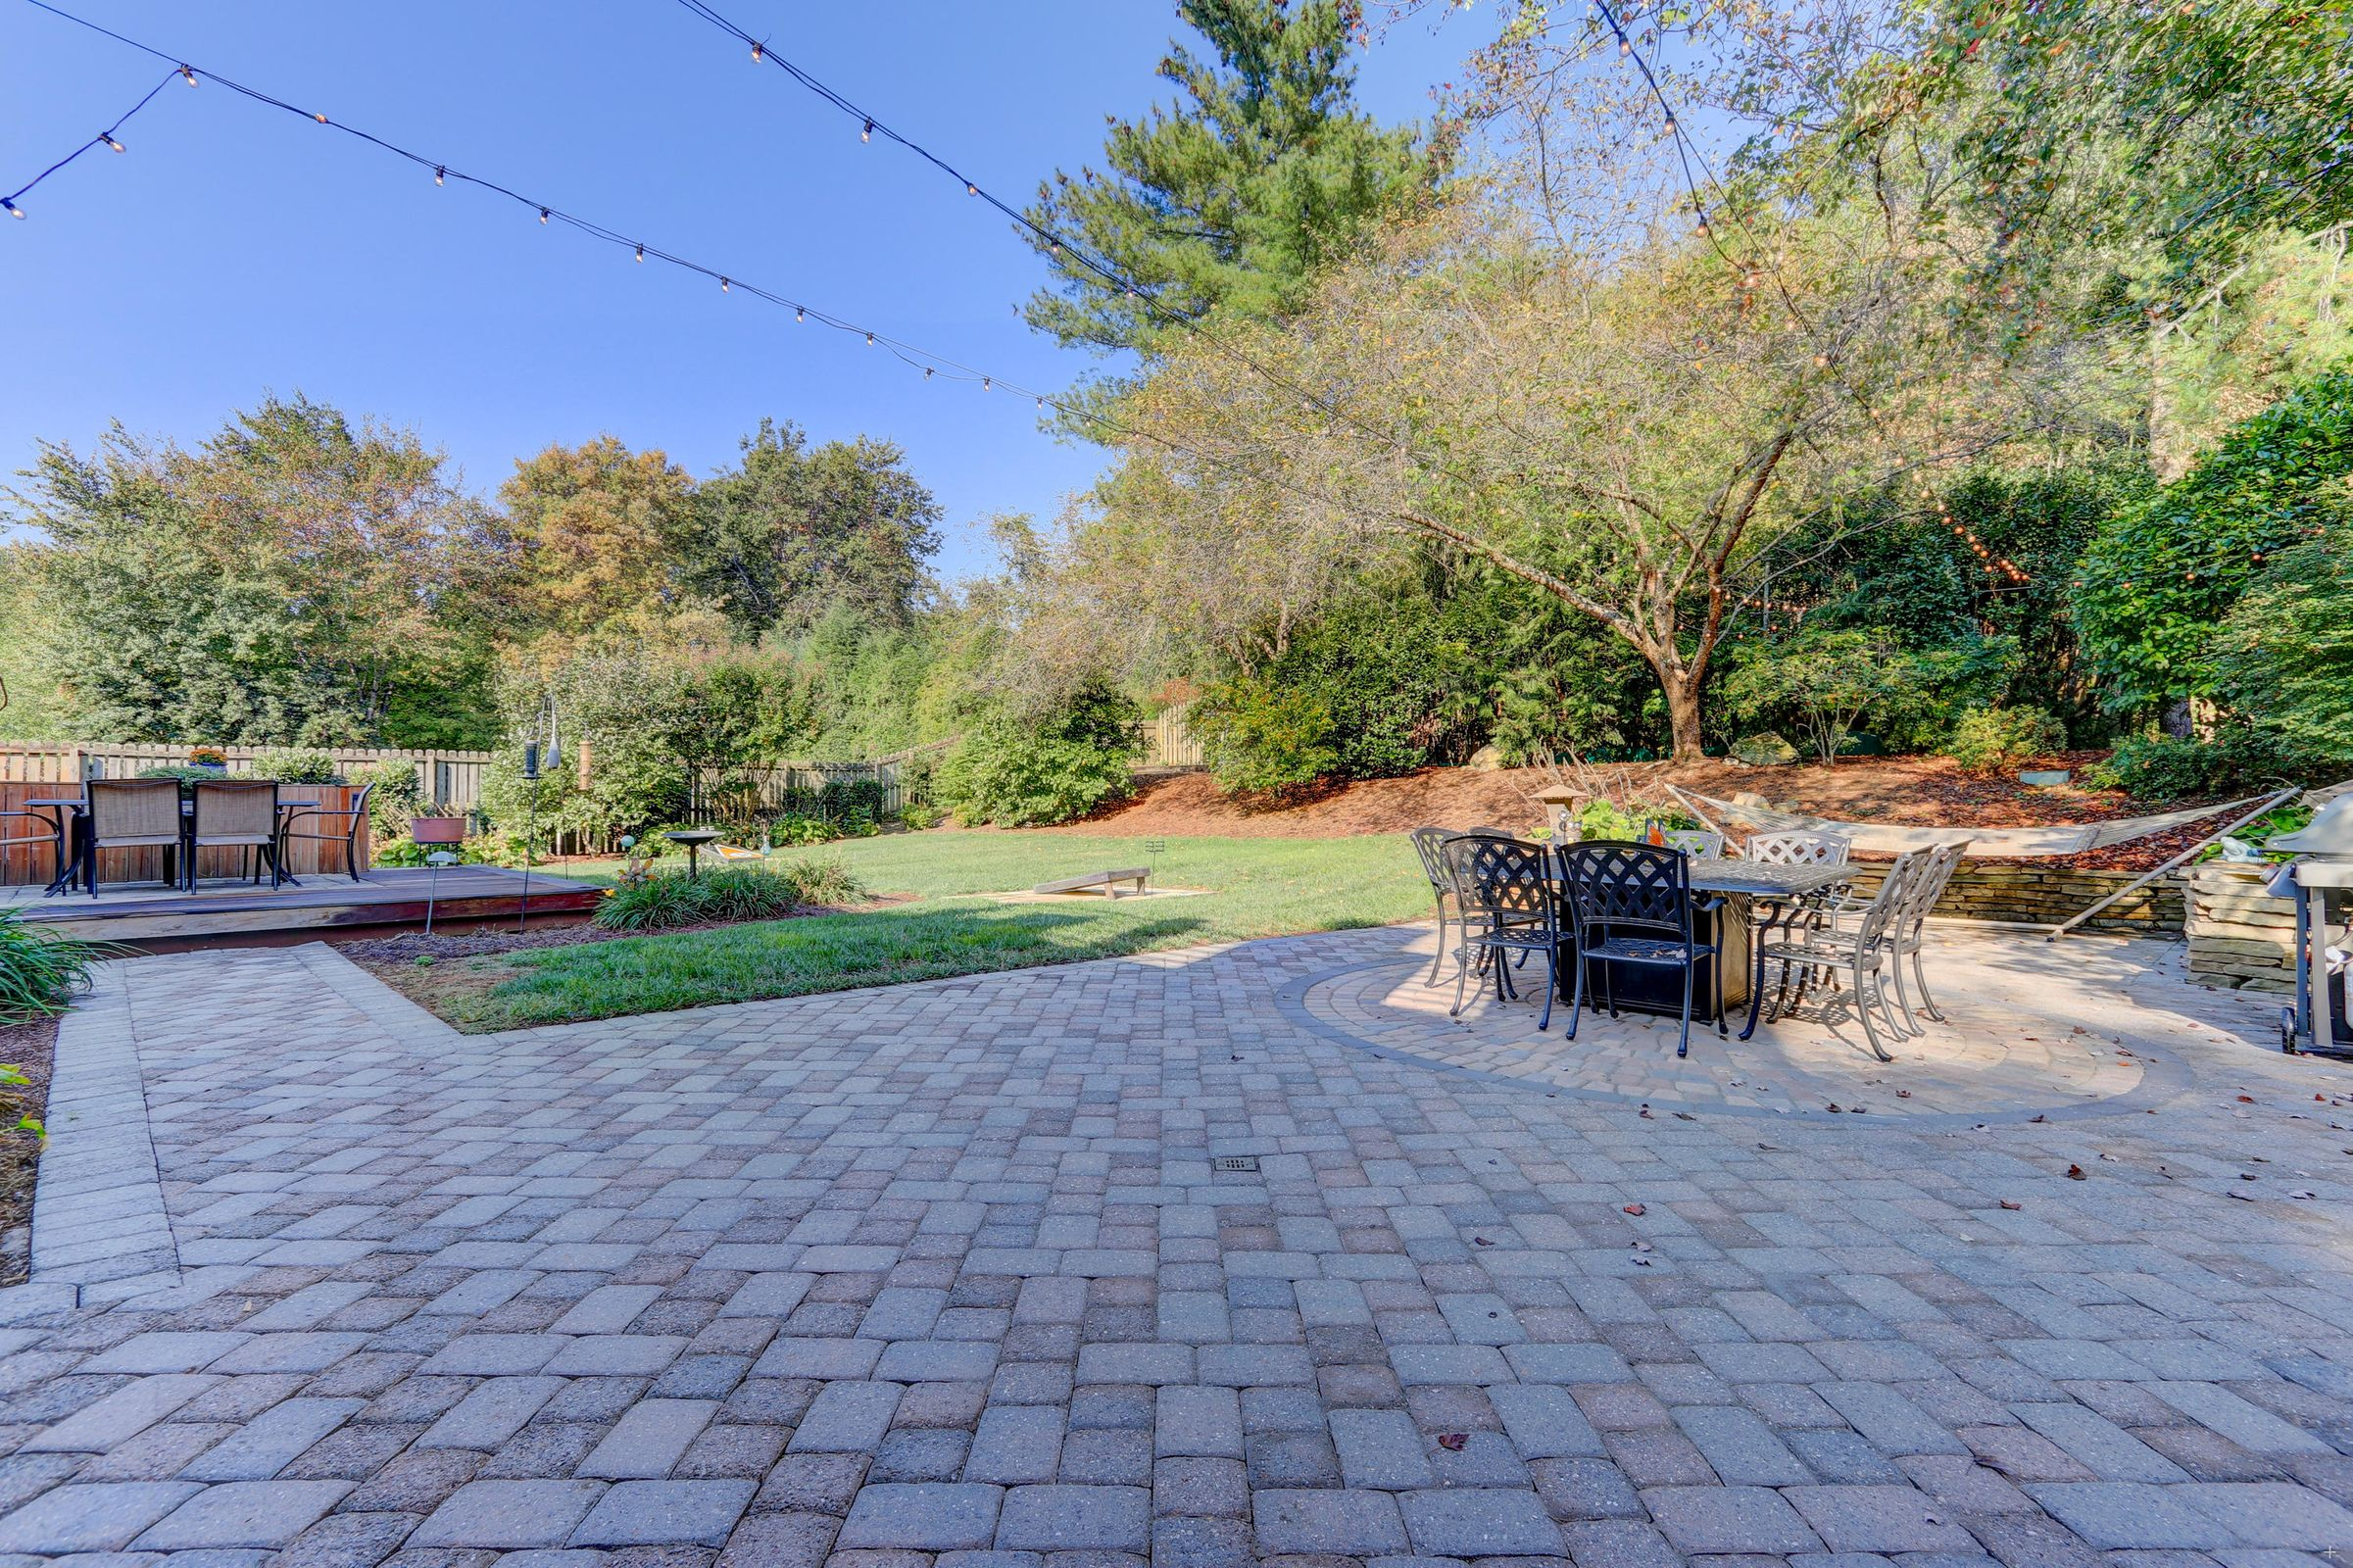 Paver Patio with Garden Lights